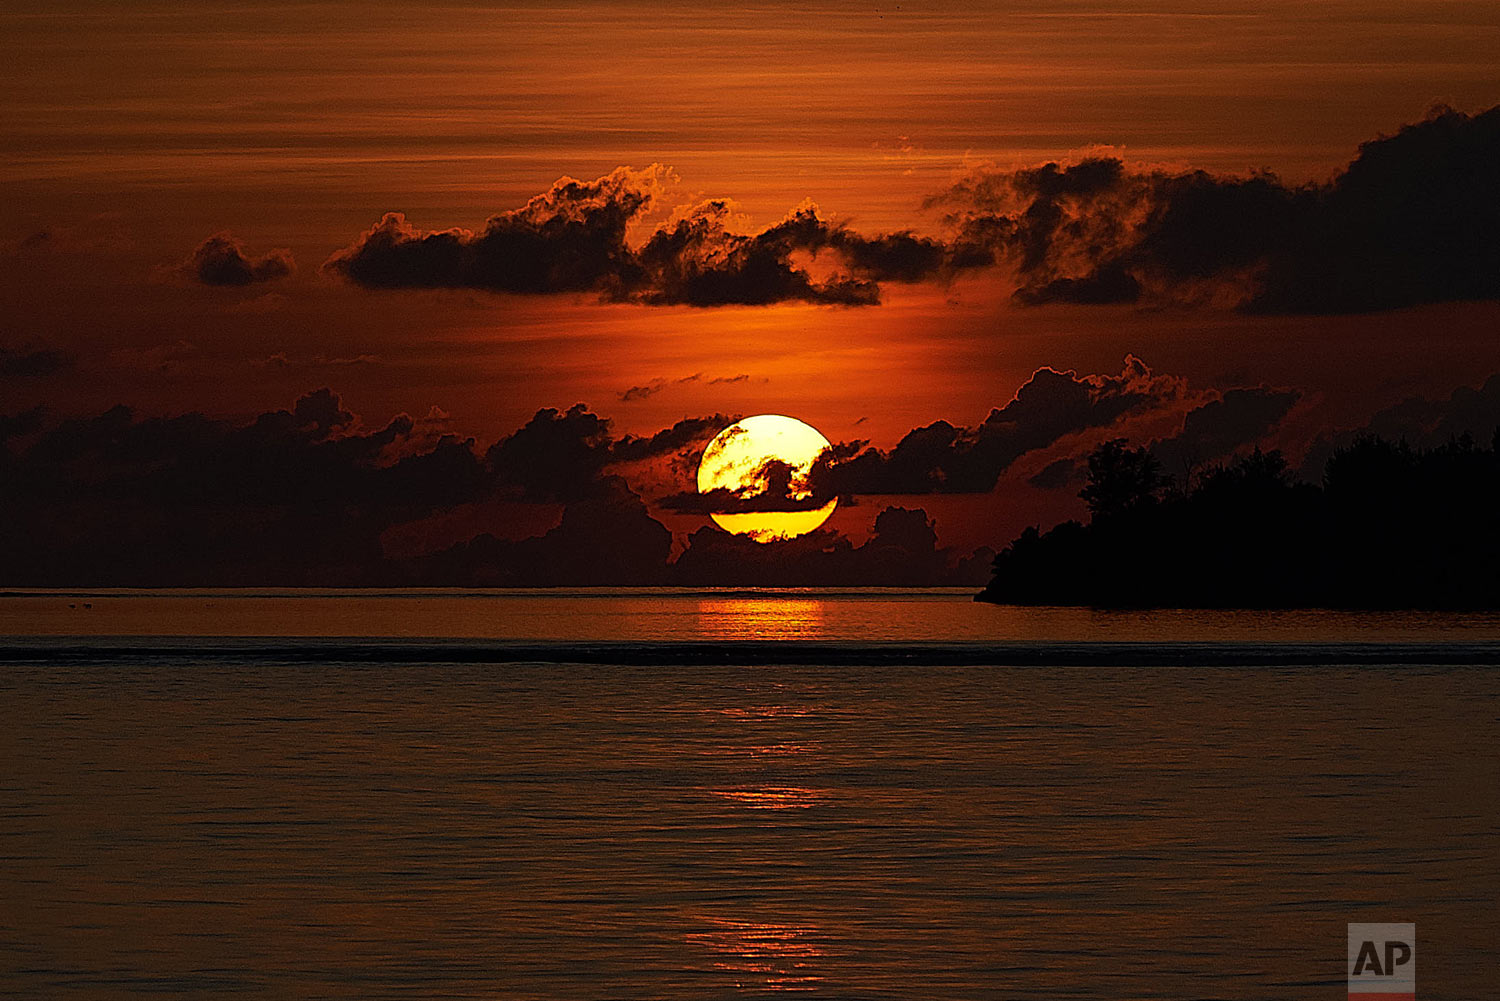 The sun sets over the island of Poivre in the Seychelles, April 5, 2019. (AP Photo/David Keyton)